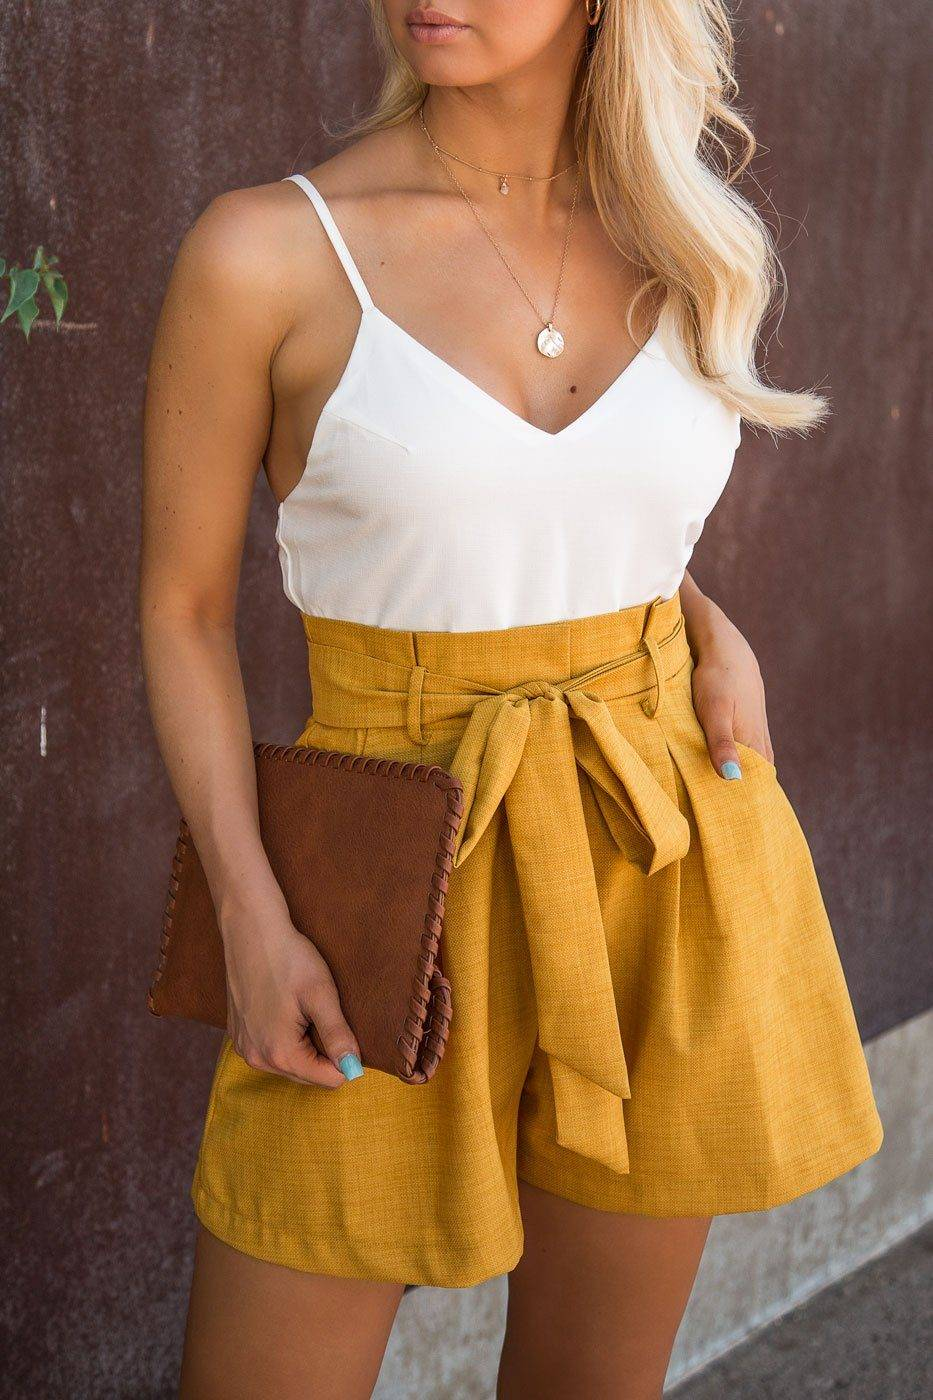 The Clothing Company Brunch Ready Mustard Romper  - G1313 Mustard Large